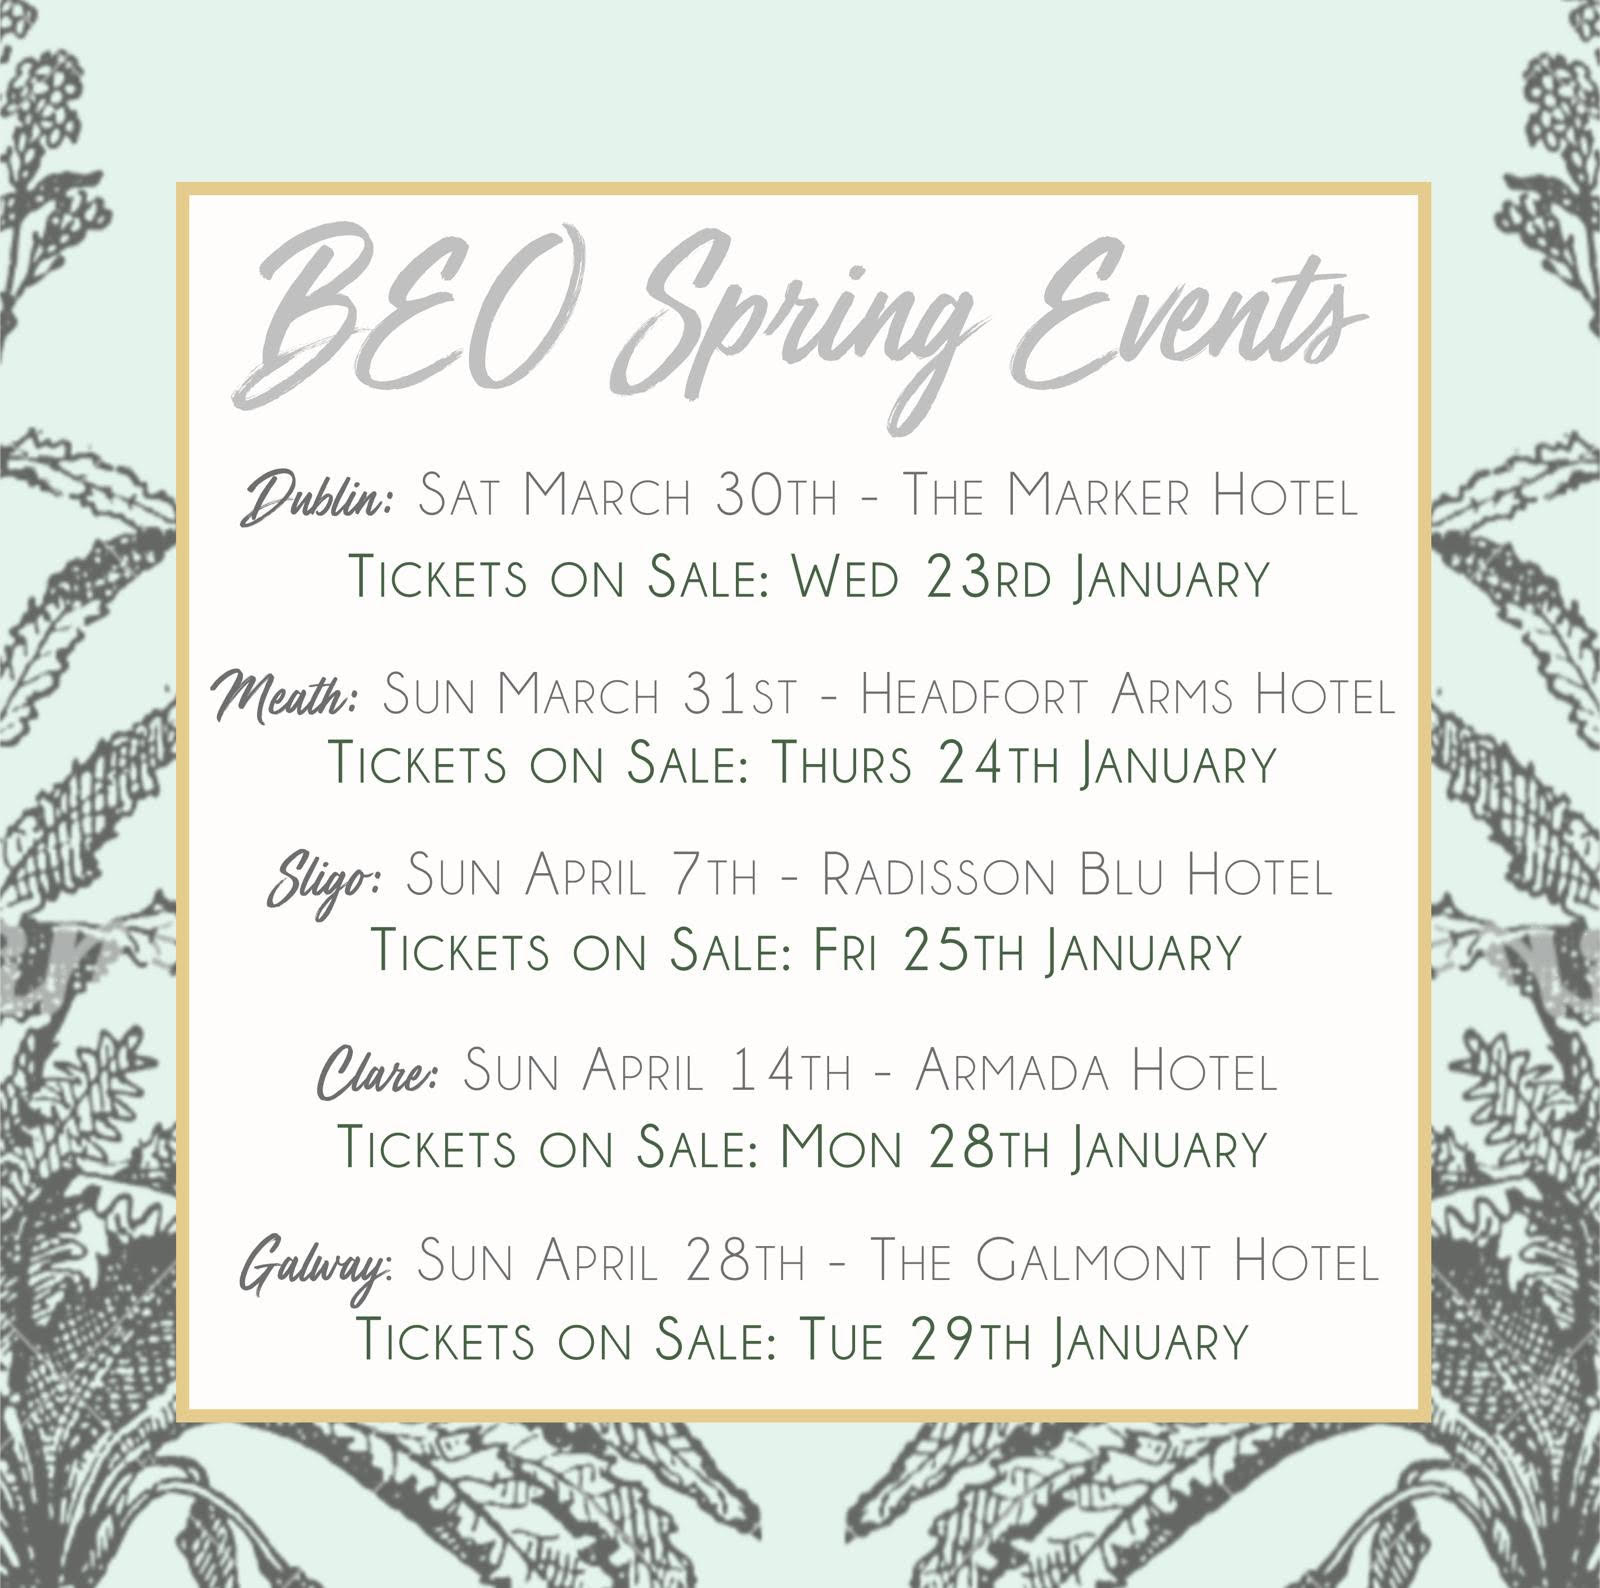 BEO Spring Events in Dublin, Meath, Sligo, Clare, and Galway